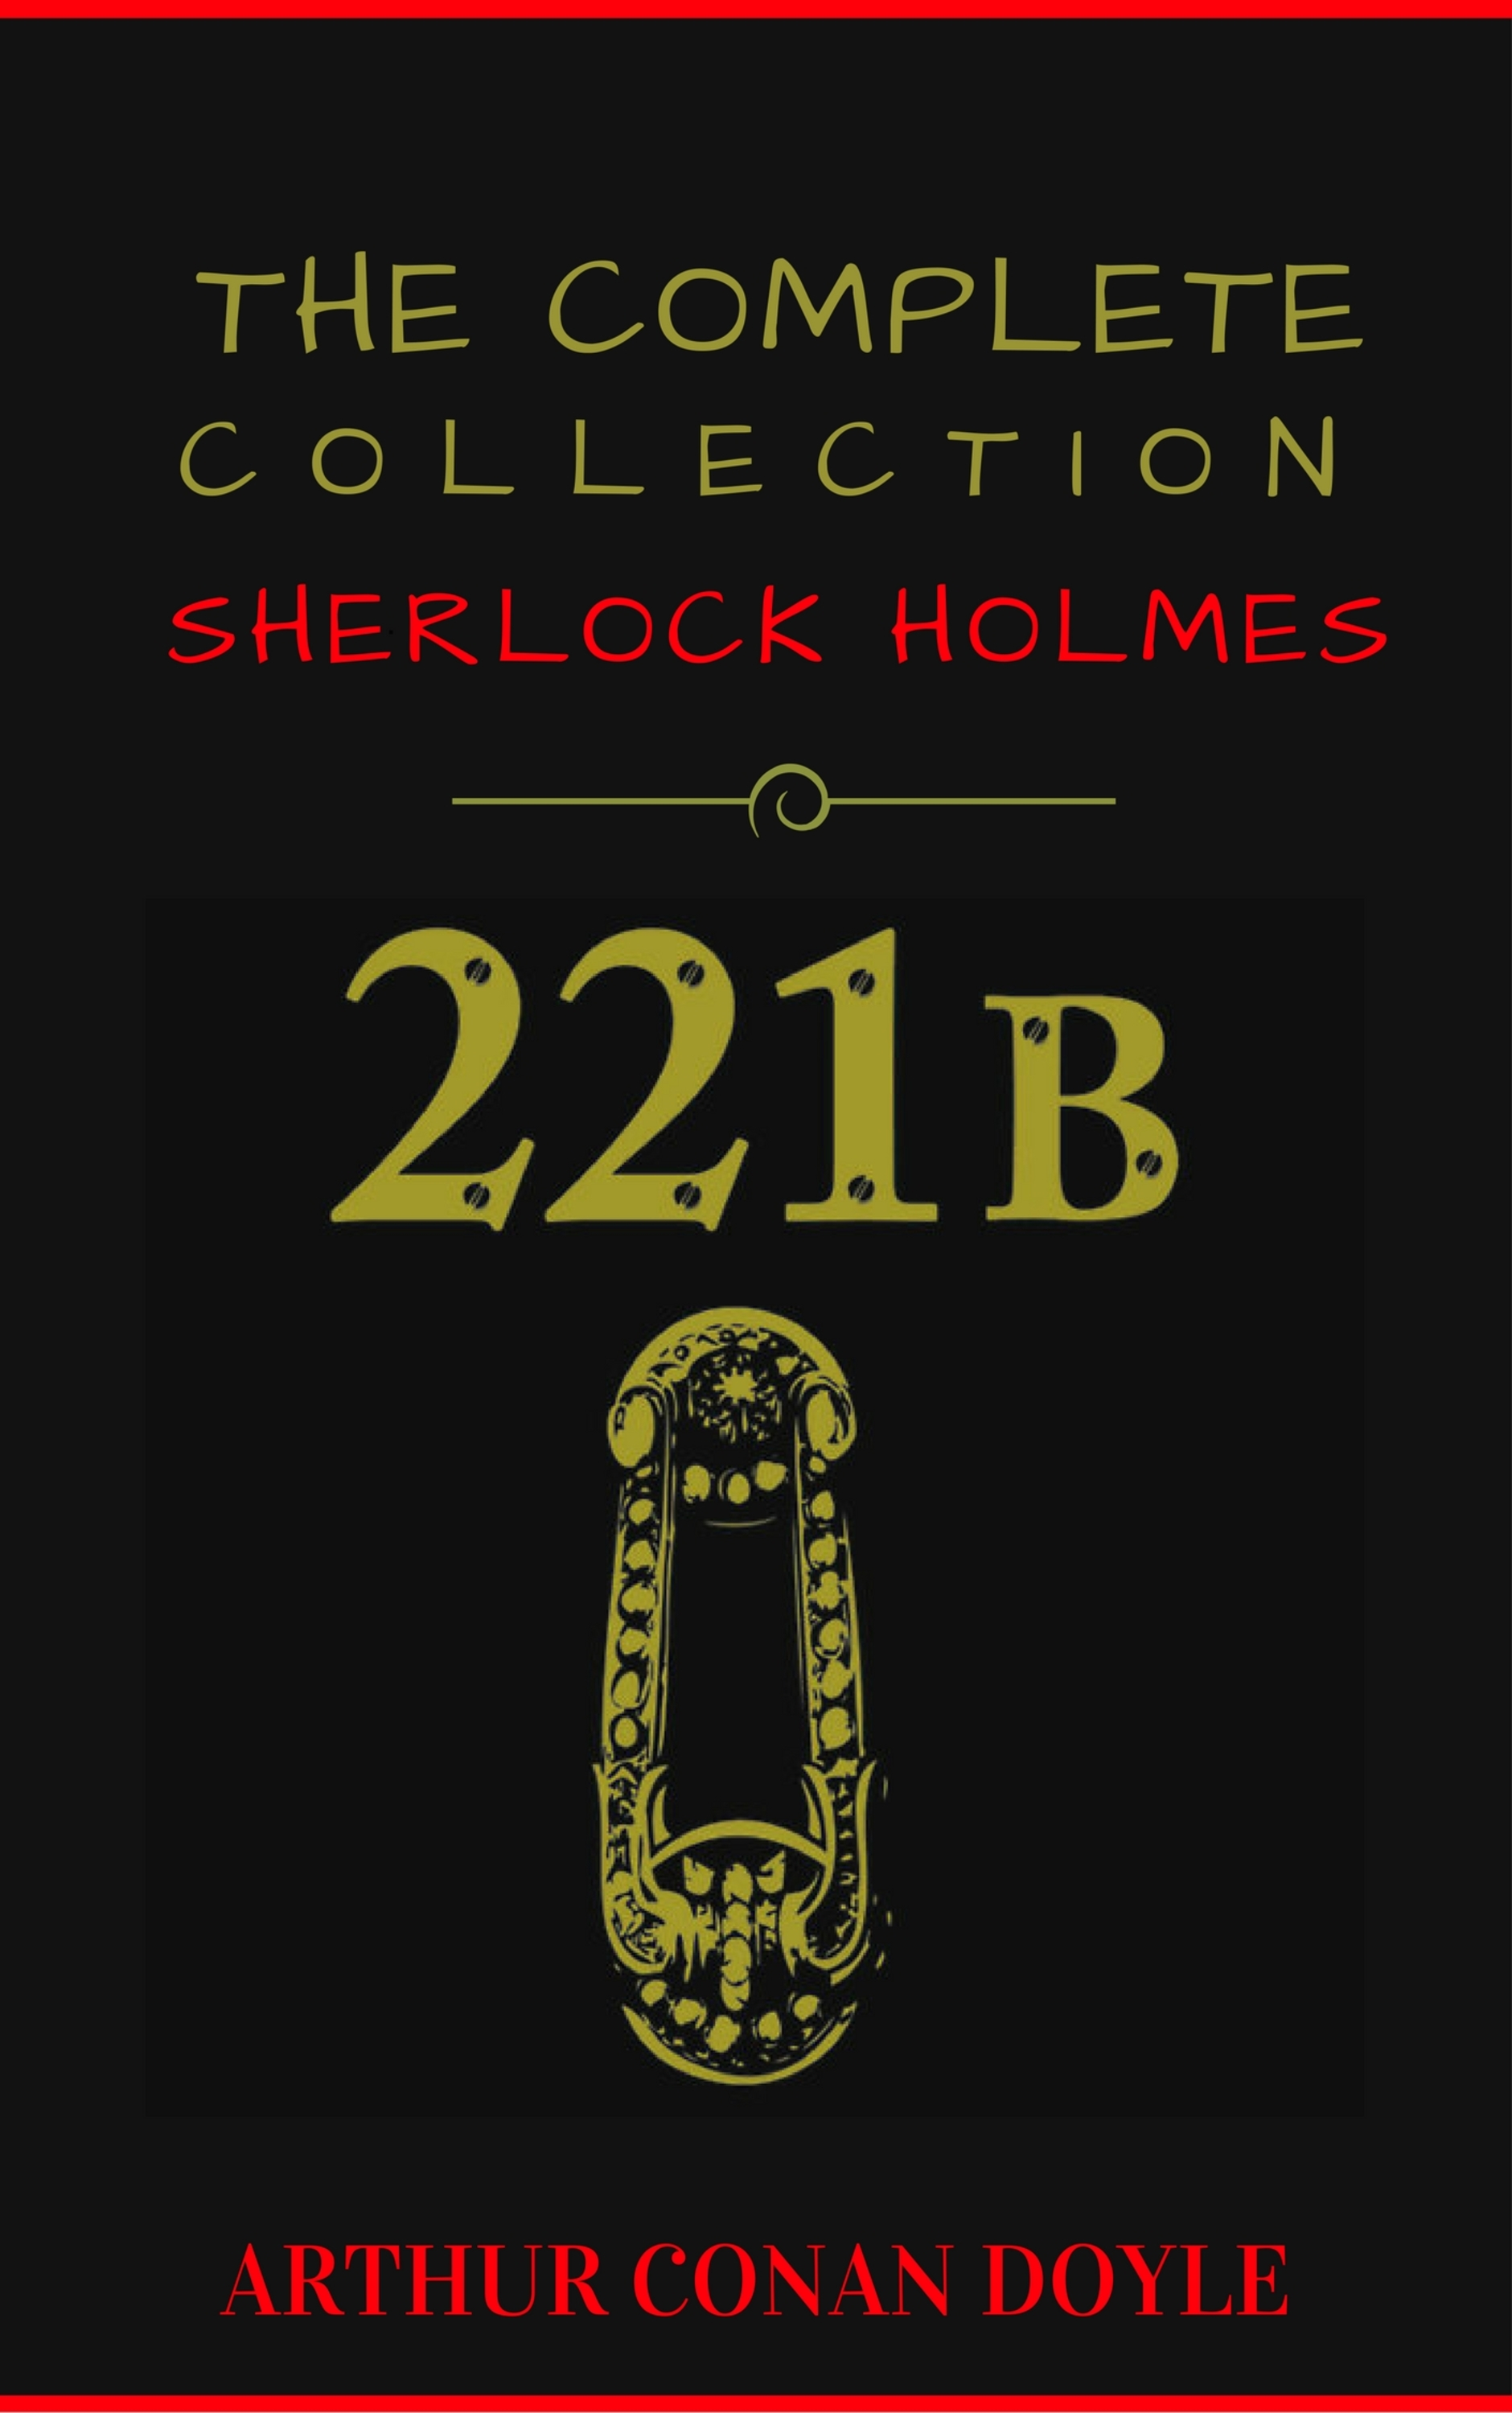 Артур Конан Дойл Sherlock Holmes: The Collection (Manor Books Publishing) (The Greatest Fictional Characters of All Time) publishing hardpress publishing hardpress publishing old new zealand a tale of the good old times